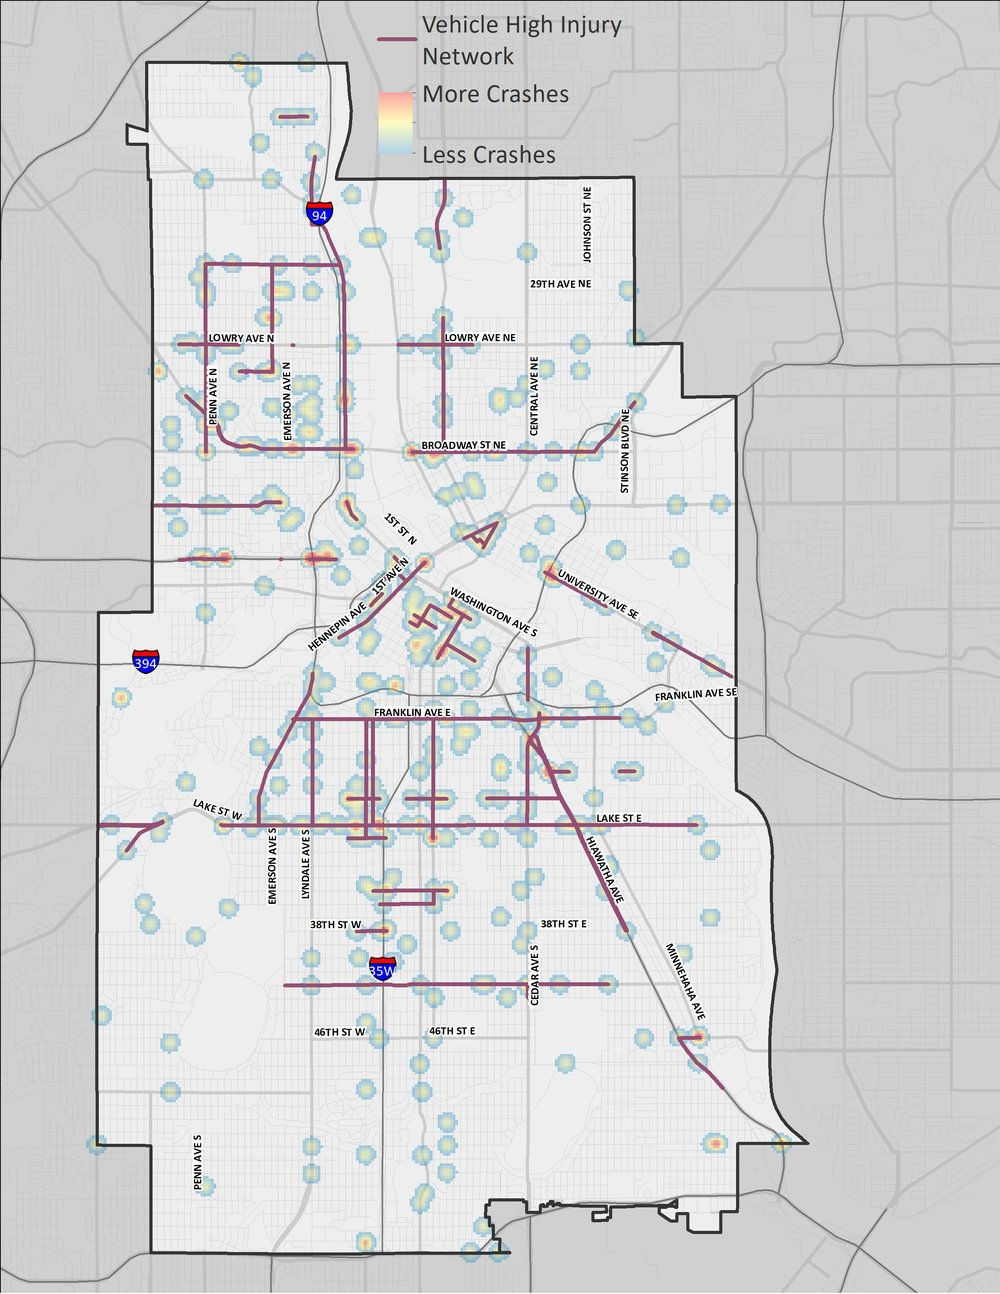 A map of Minneapolis showing the corridors and areas where motor vehicle crashes are most prevalent.